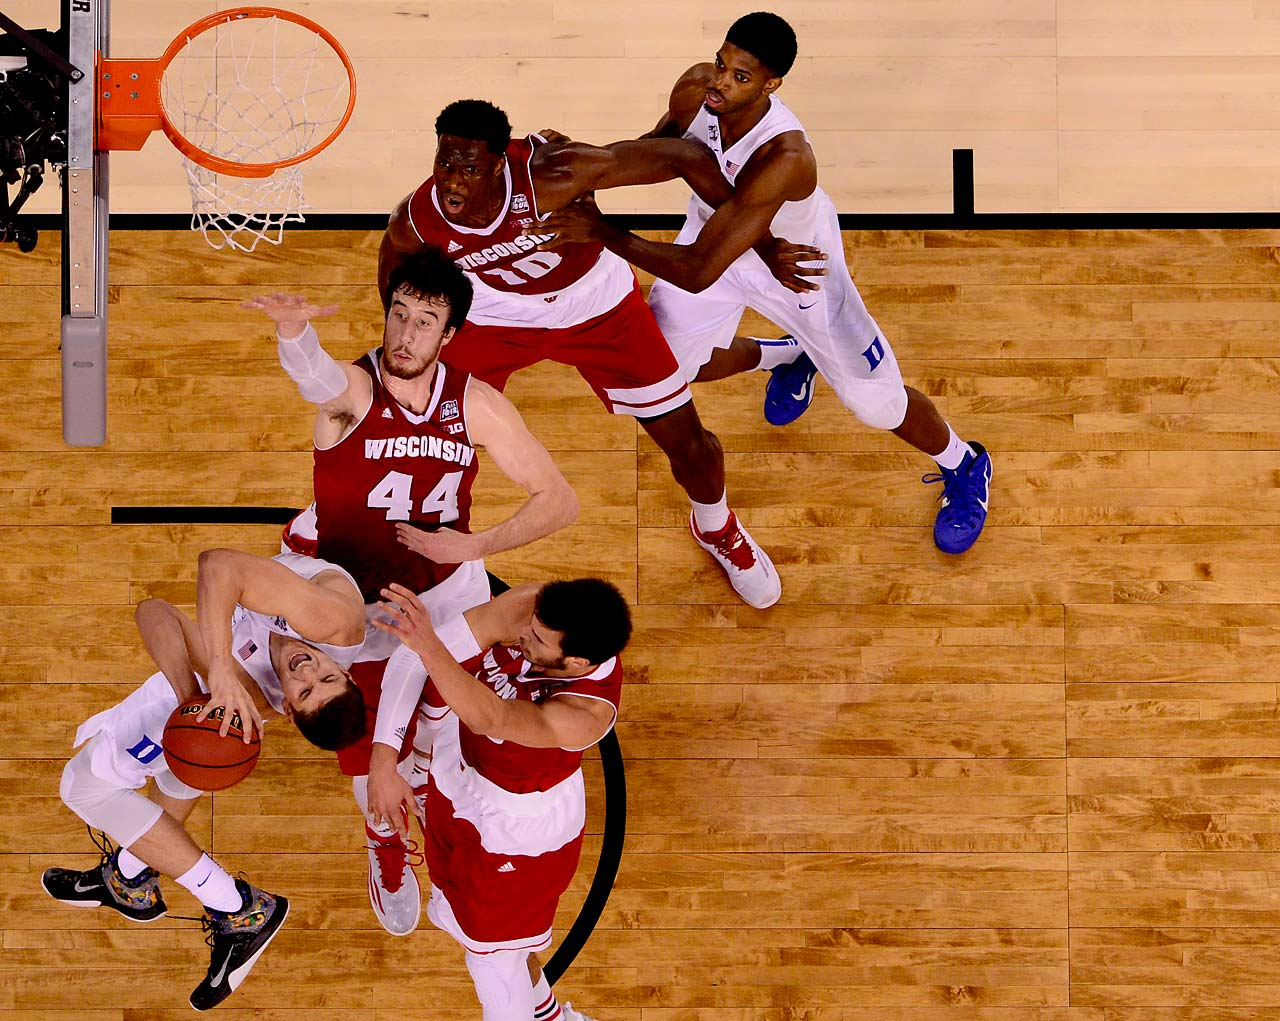 Duke guard Grayson Allen contorts his body to lift a shot over two Wisconsin defenders. In addition to 5-8 shooting, Allen reached the free throw line five times and made all five shots.